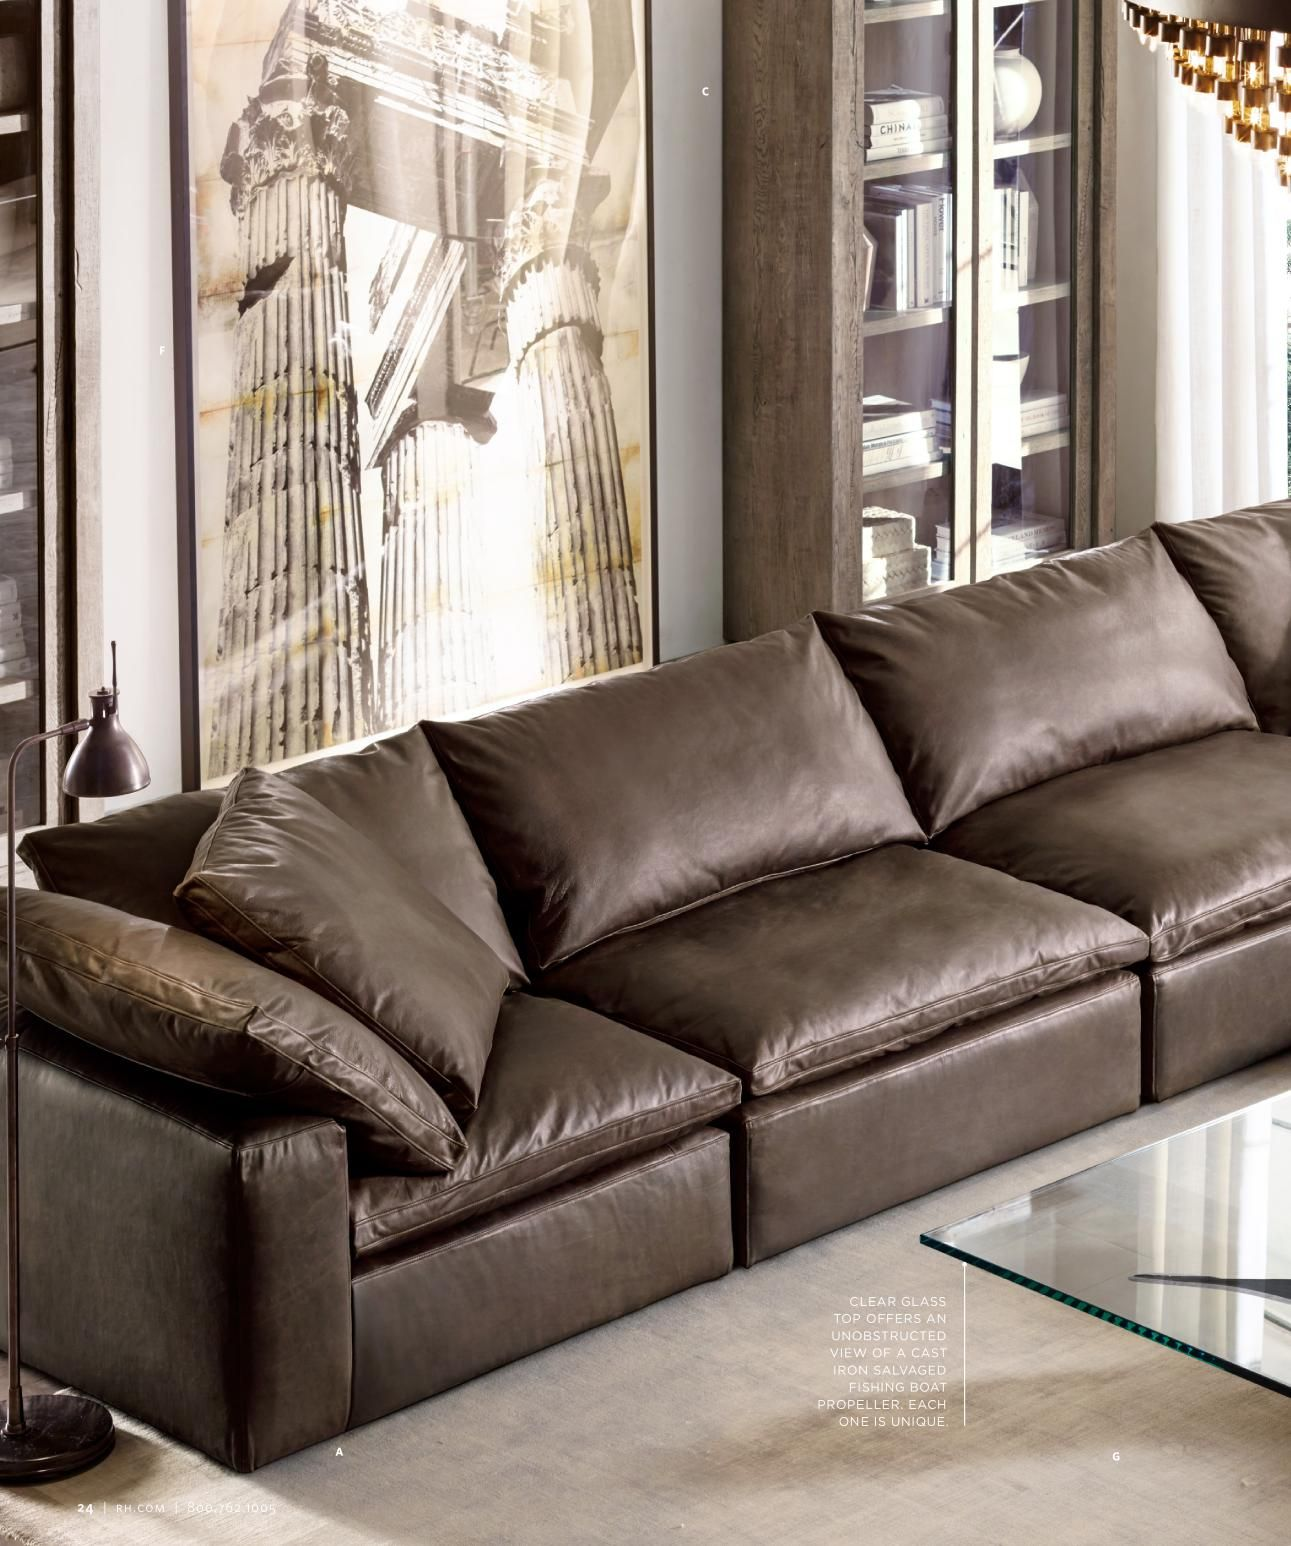 Rh Cloud Leather Sofa I Want It In White Beach House Living